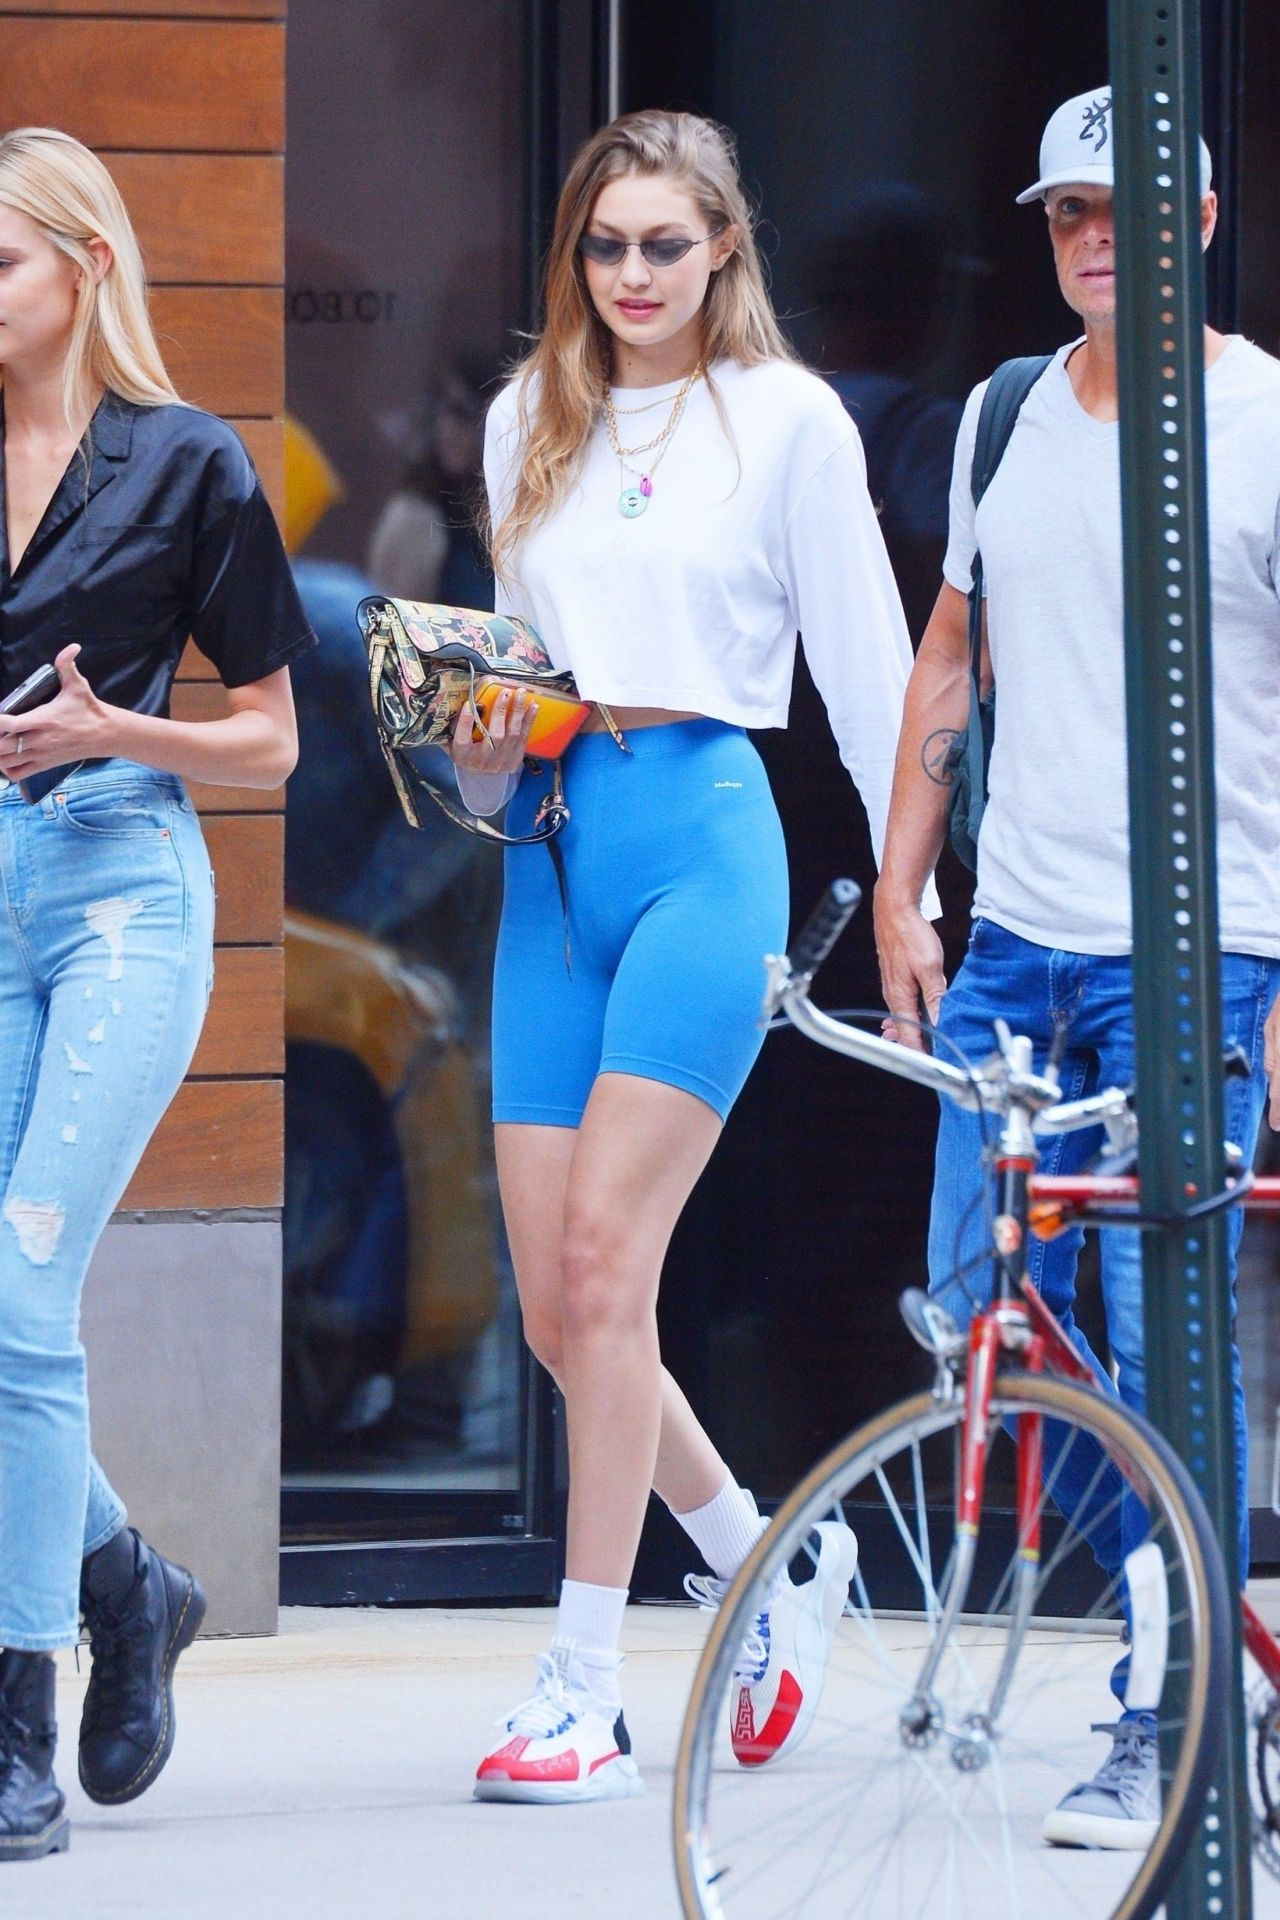 Gigi Hadid in Biker Shorts - Leaving Her Apartment in NYC 08/05/2019